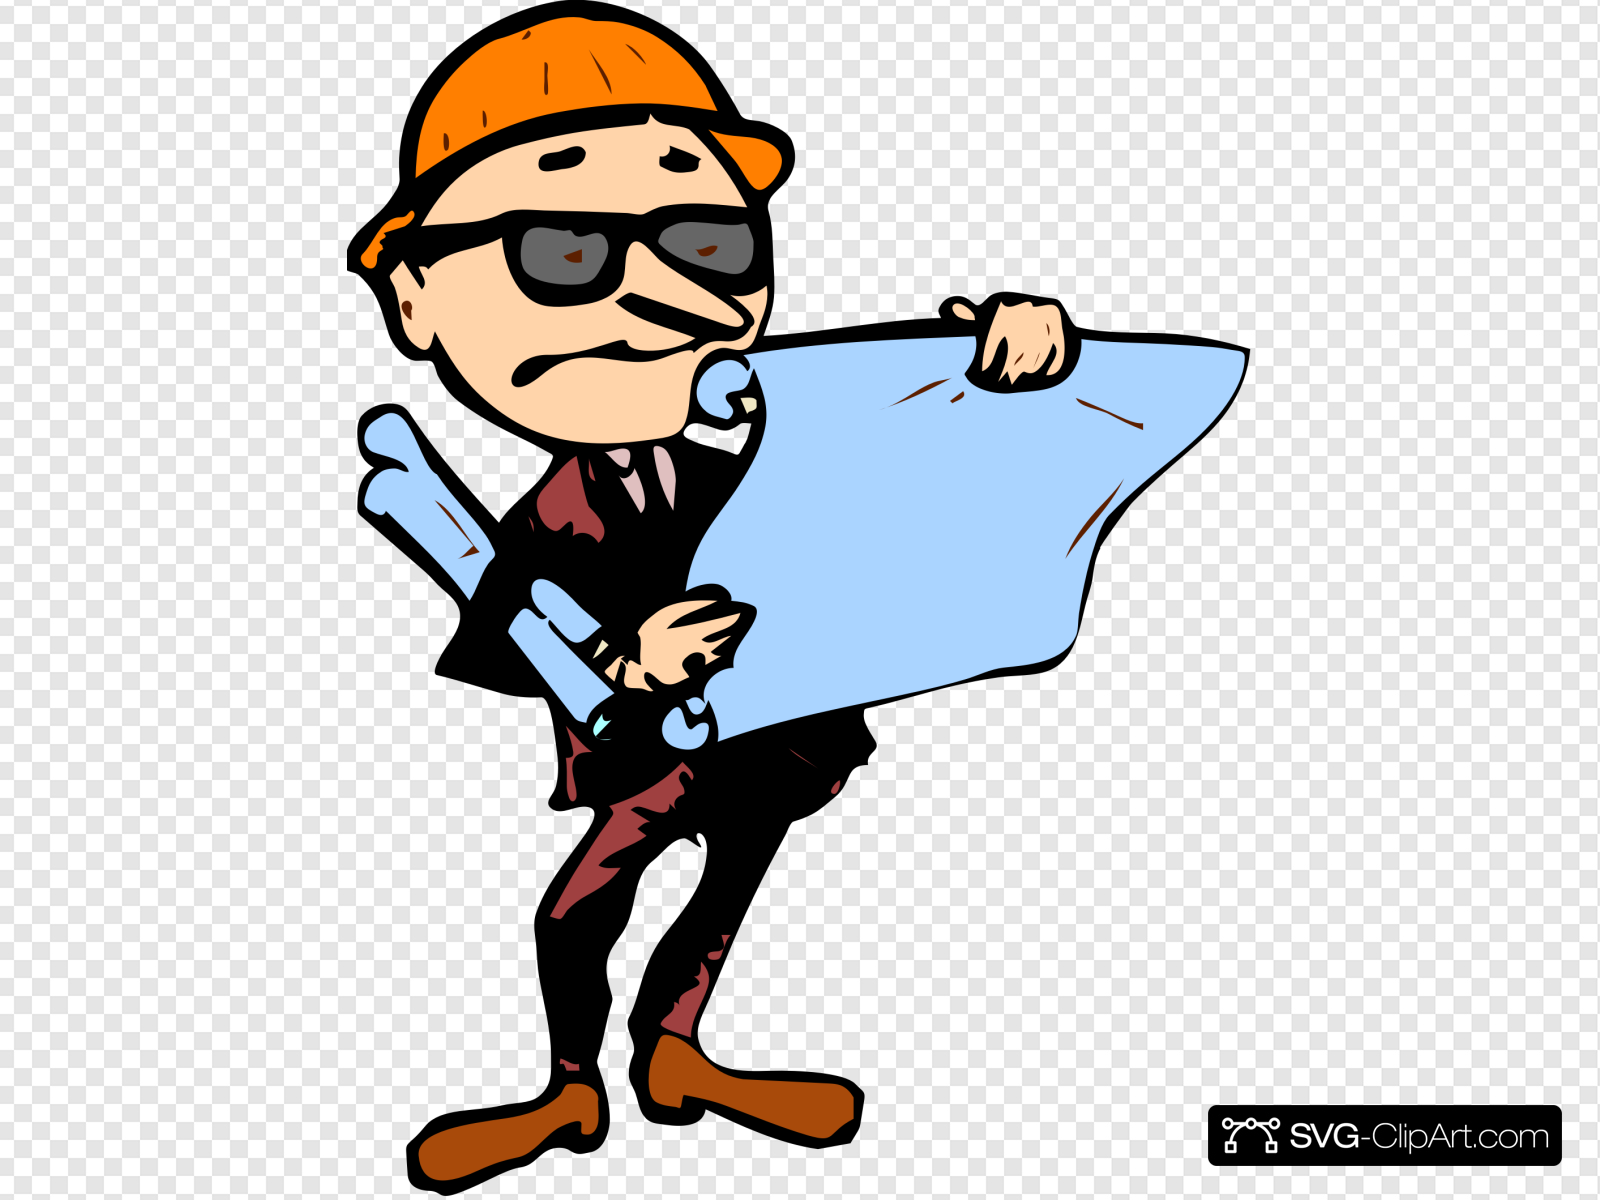 Contractor Clip art, Icon and SVG.